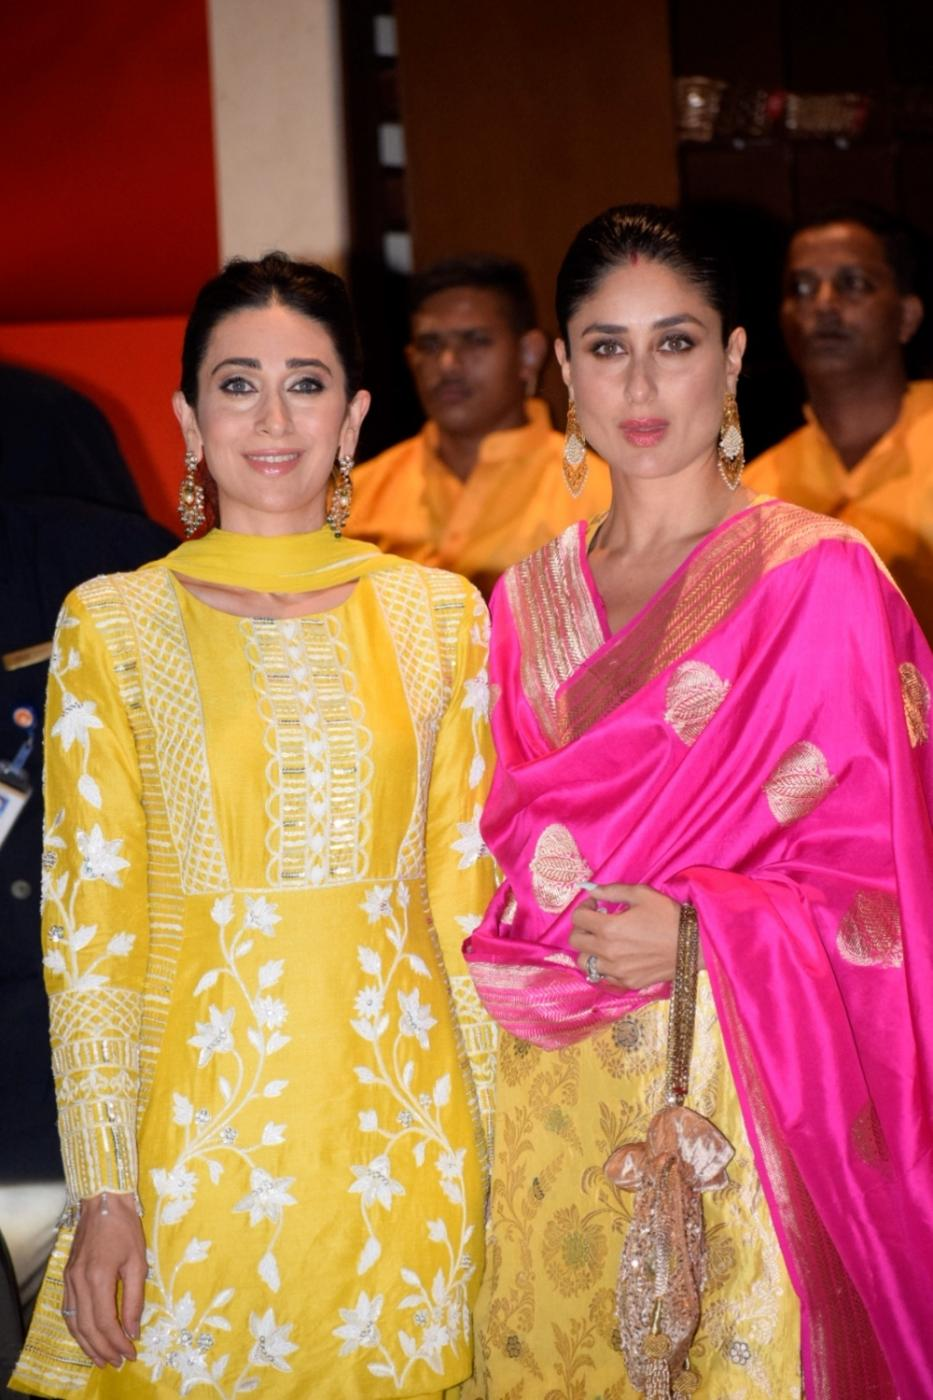 Mumbai: Actresses Karisma Kapoor and Kareena Kapoor Khan arrive at Reliance Industries Chairman and MD Mukesh Ambani's residence to celebrate Ganesh Chaturthi in Mumbai on Sept 13, 2018. (Photo: IANS) by .